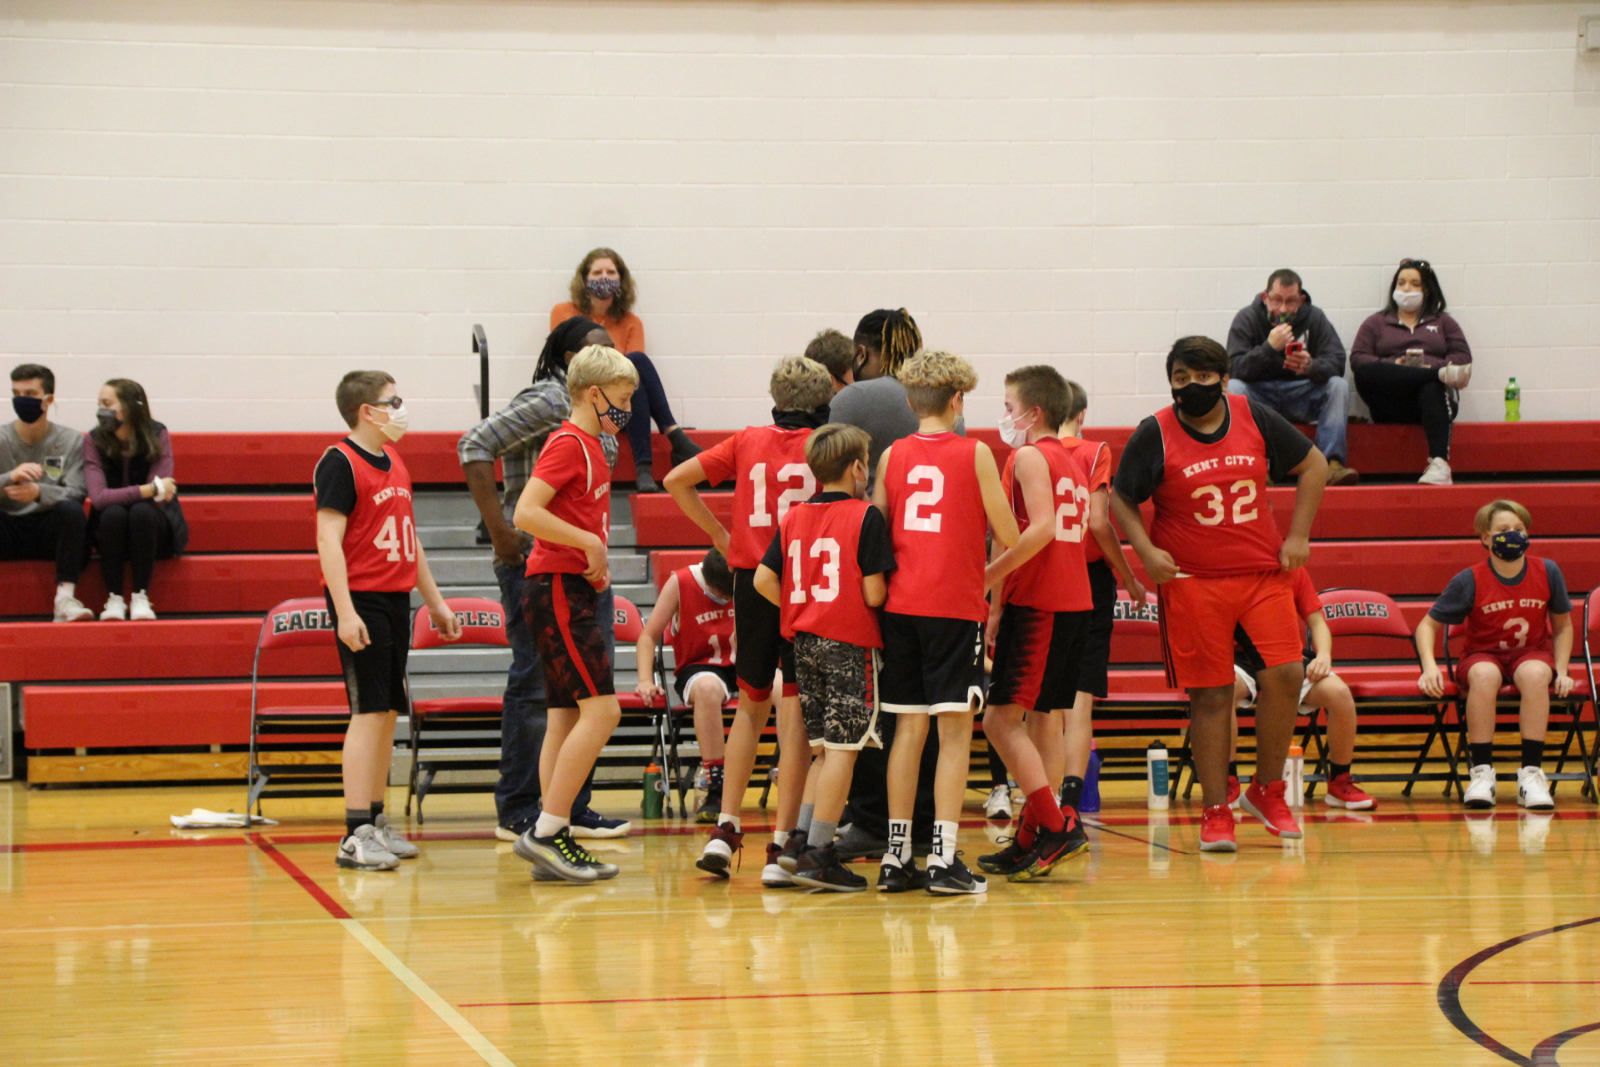 7th grade Boys Basketball vs. Newaygo 11-4-20